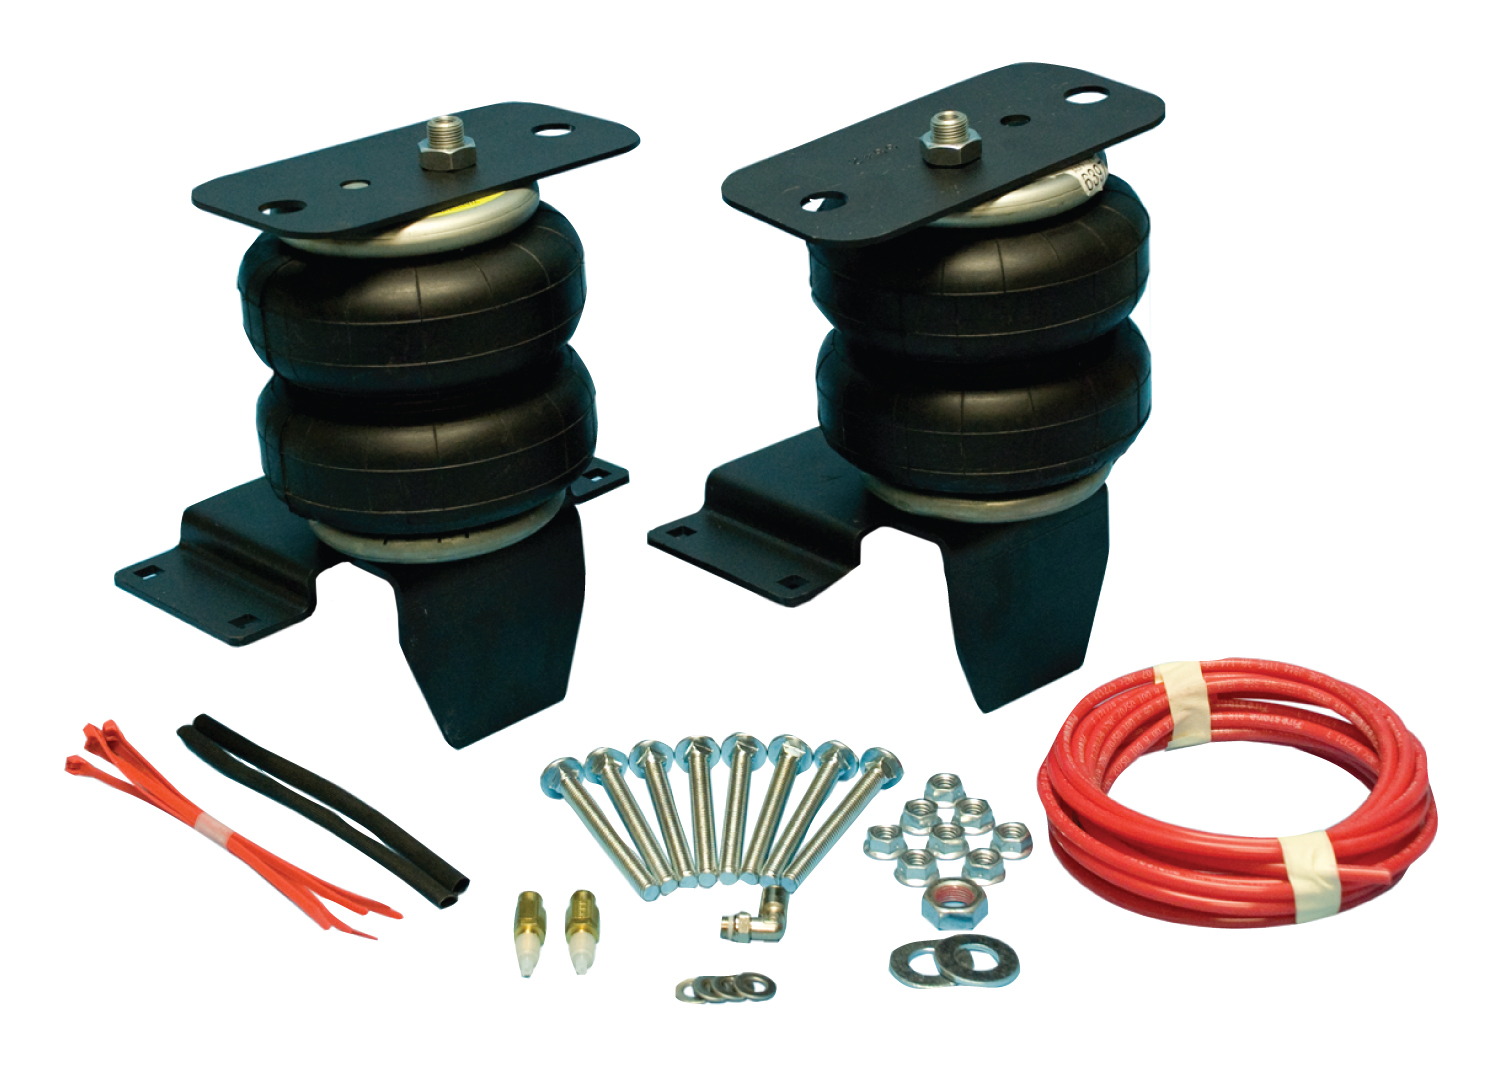 Ride-Riter Air Helper Spring Kit, Rear, Incl. Brackets, Air Helper Springs, Hardware, Air Line, And Inflation Valves, No Drilling Required